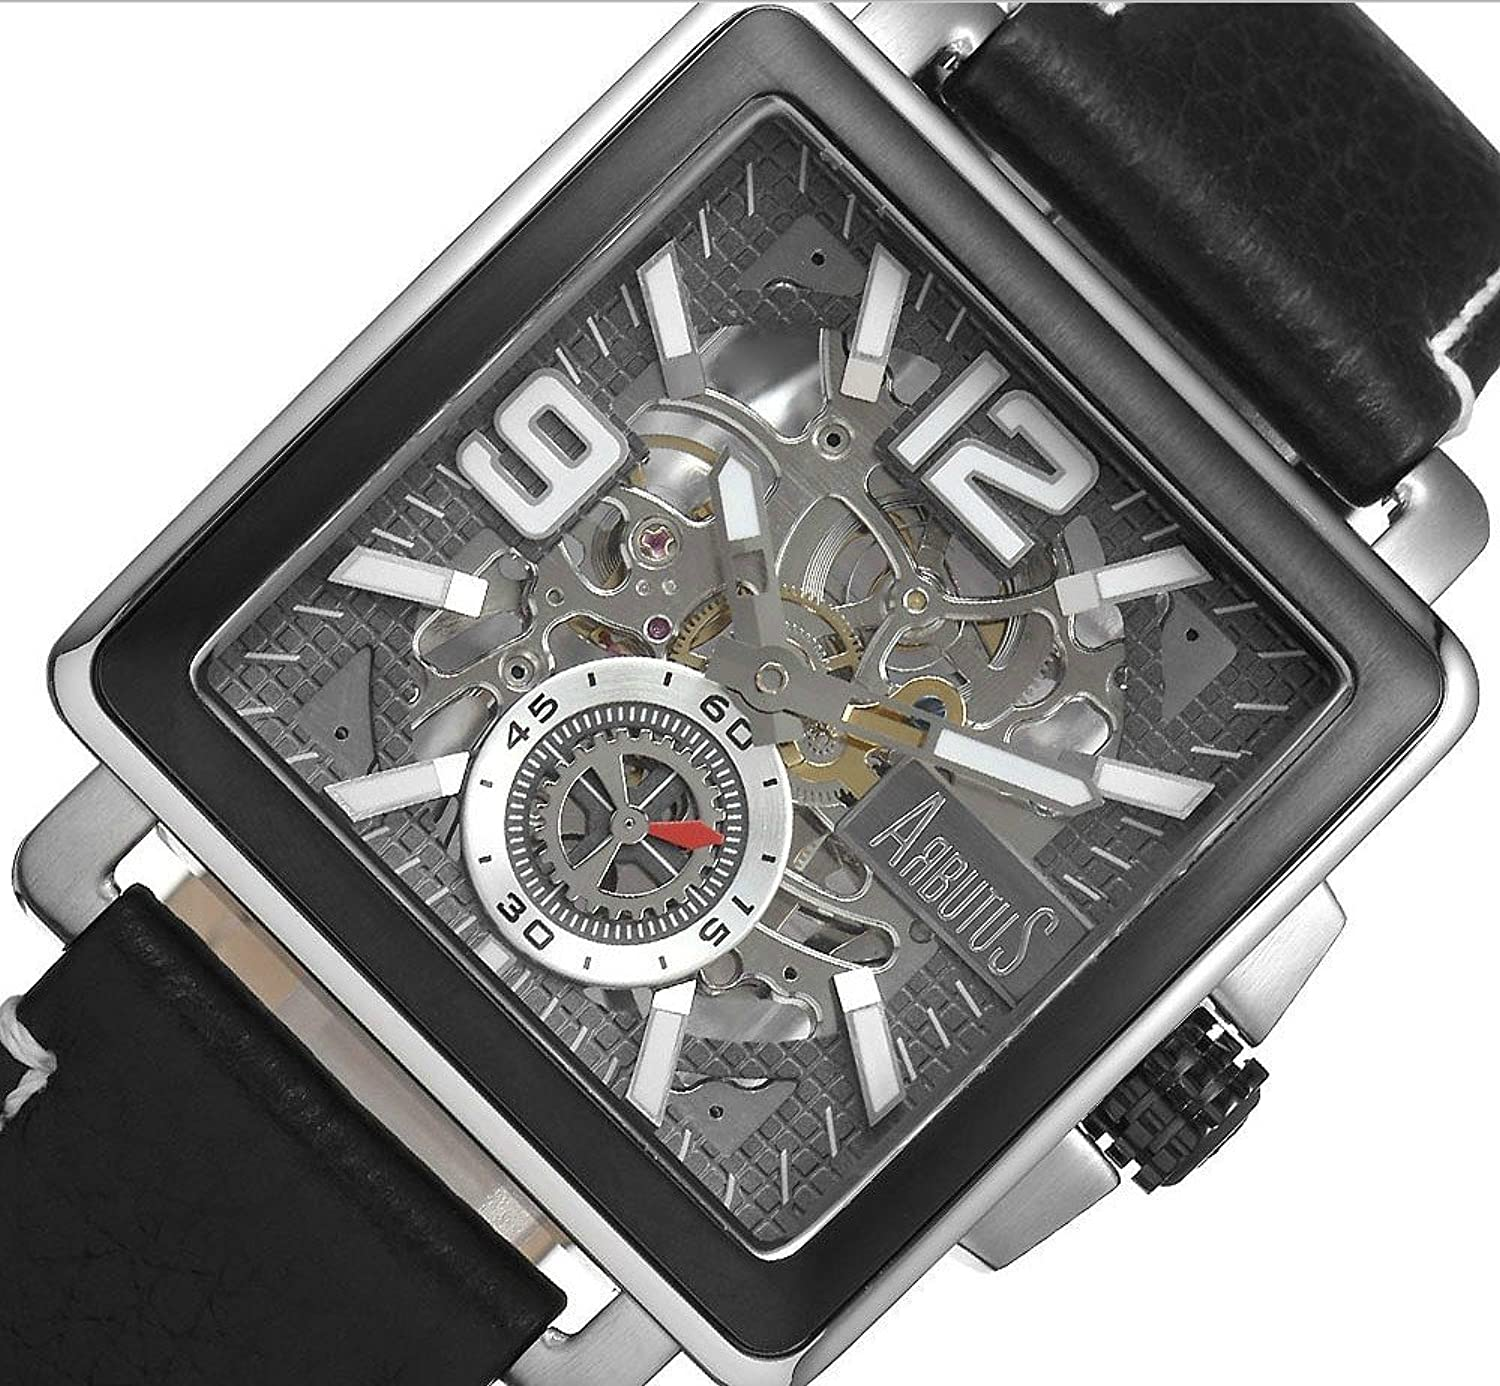 Arbutus New York Gents Hand-Uhr AR710 Skelett Zifferblatt - Lederband schwarz